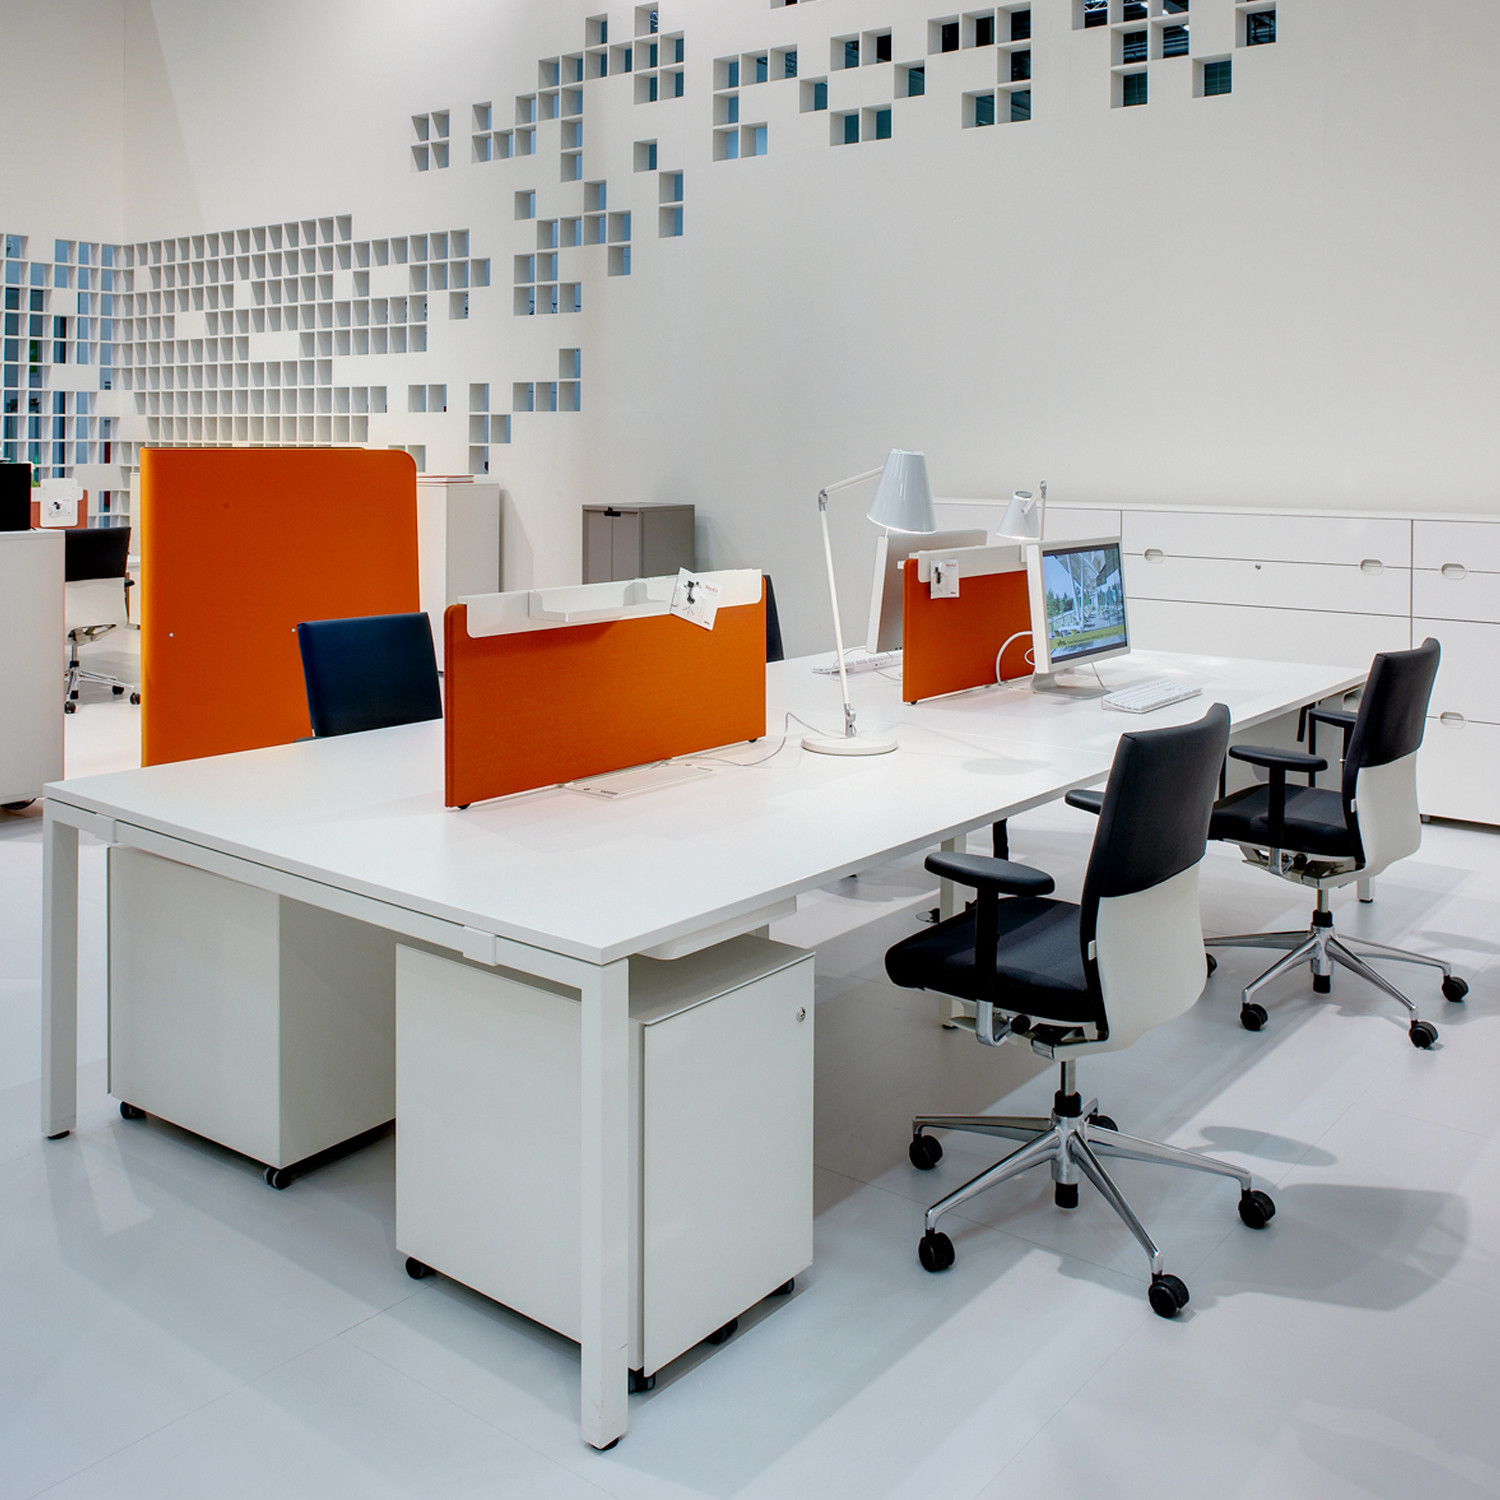 Workit Office Bench Desk | Vitra Workit Bench Desks ...